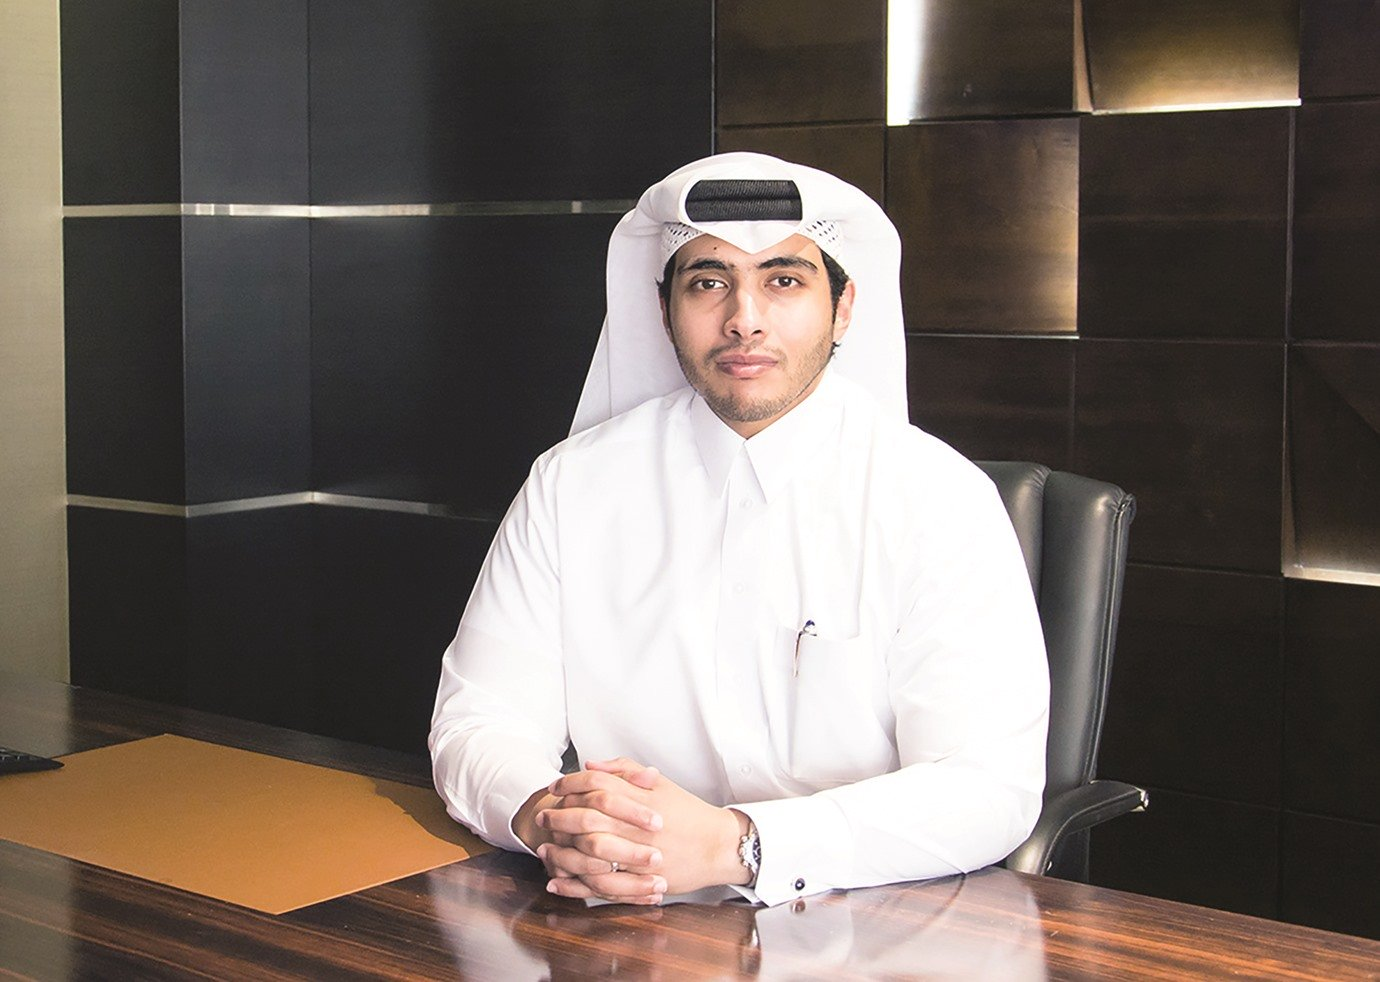 Milaha supports 'Made in Qatar' as Golden Sponsor